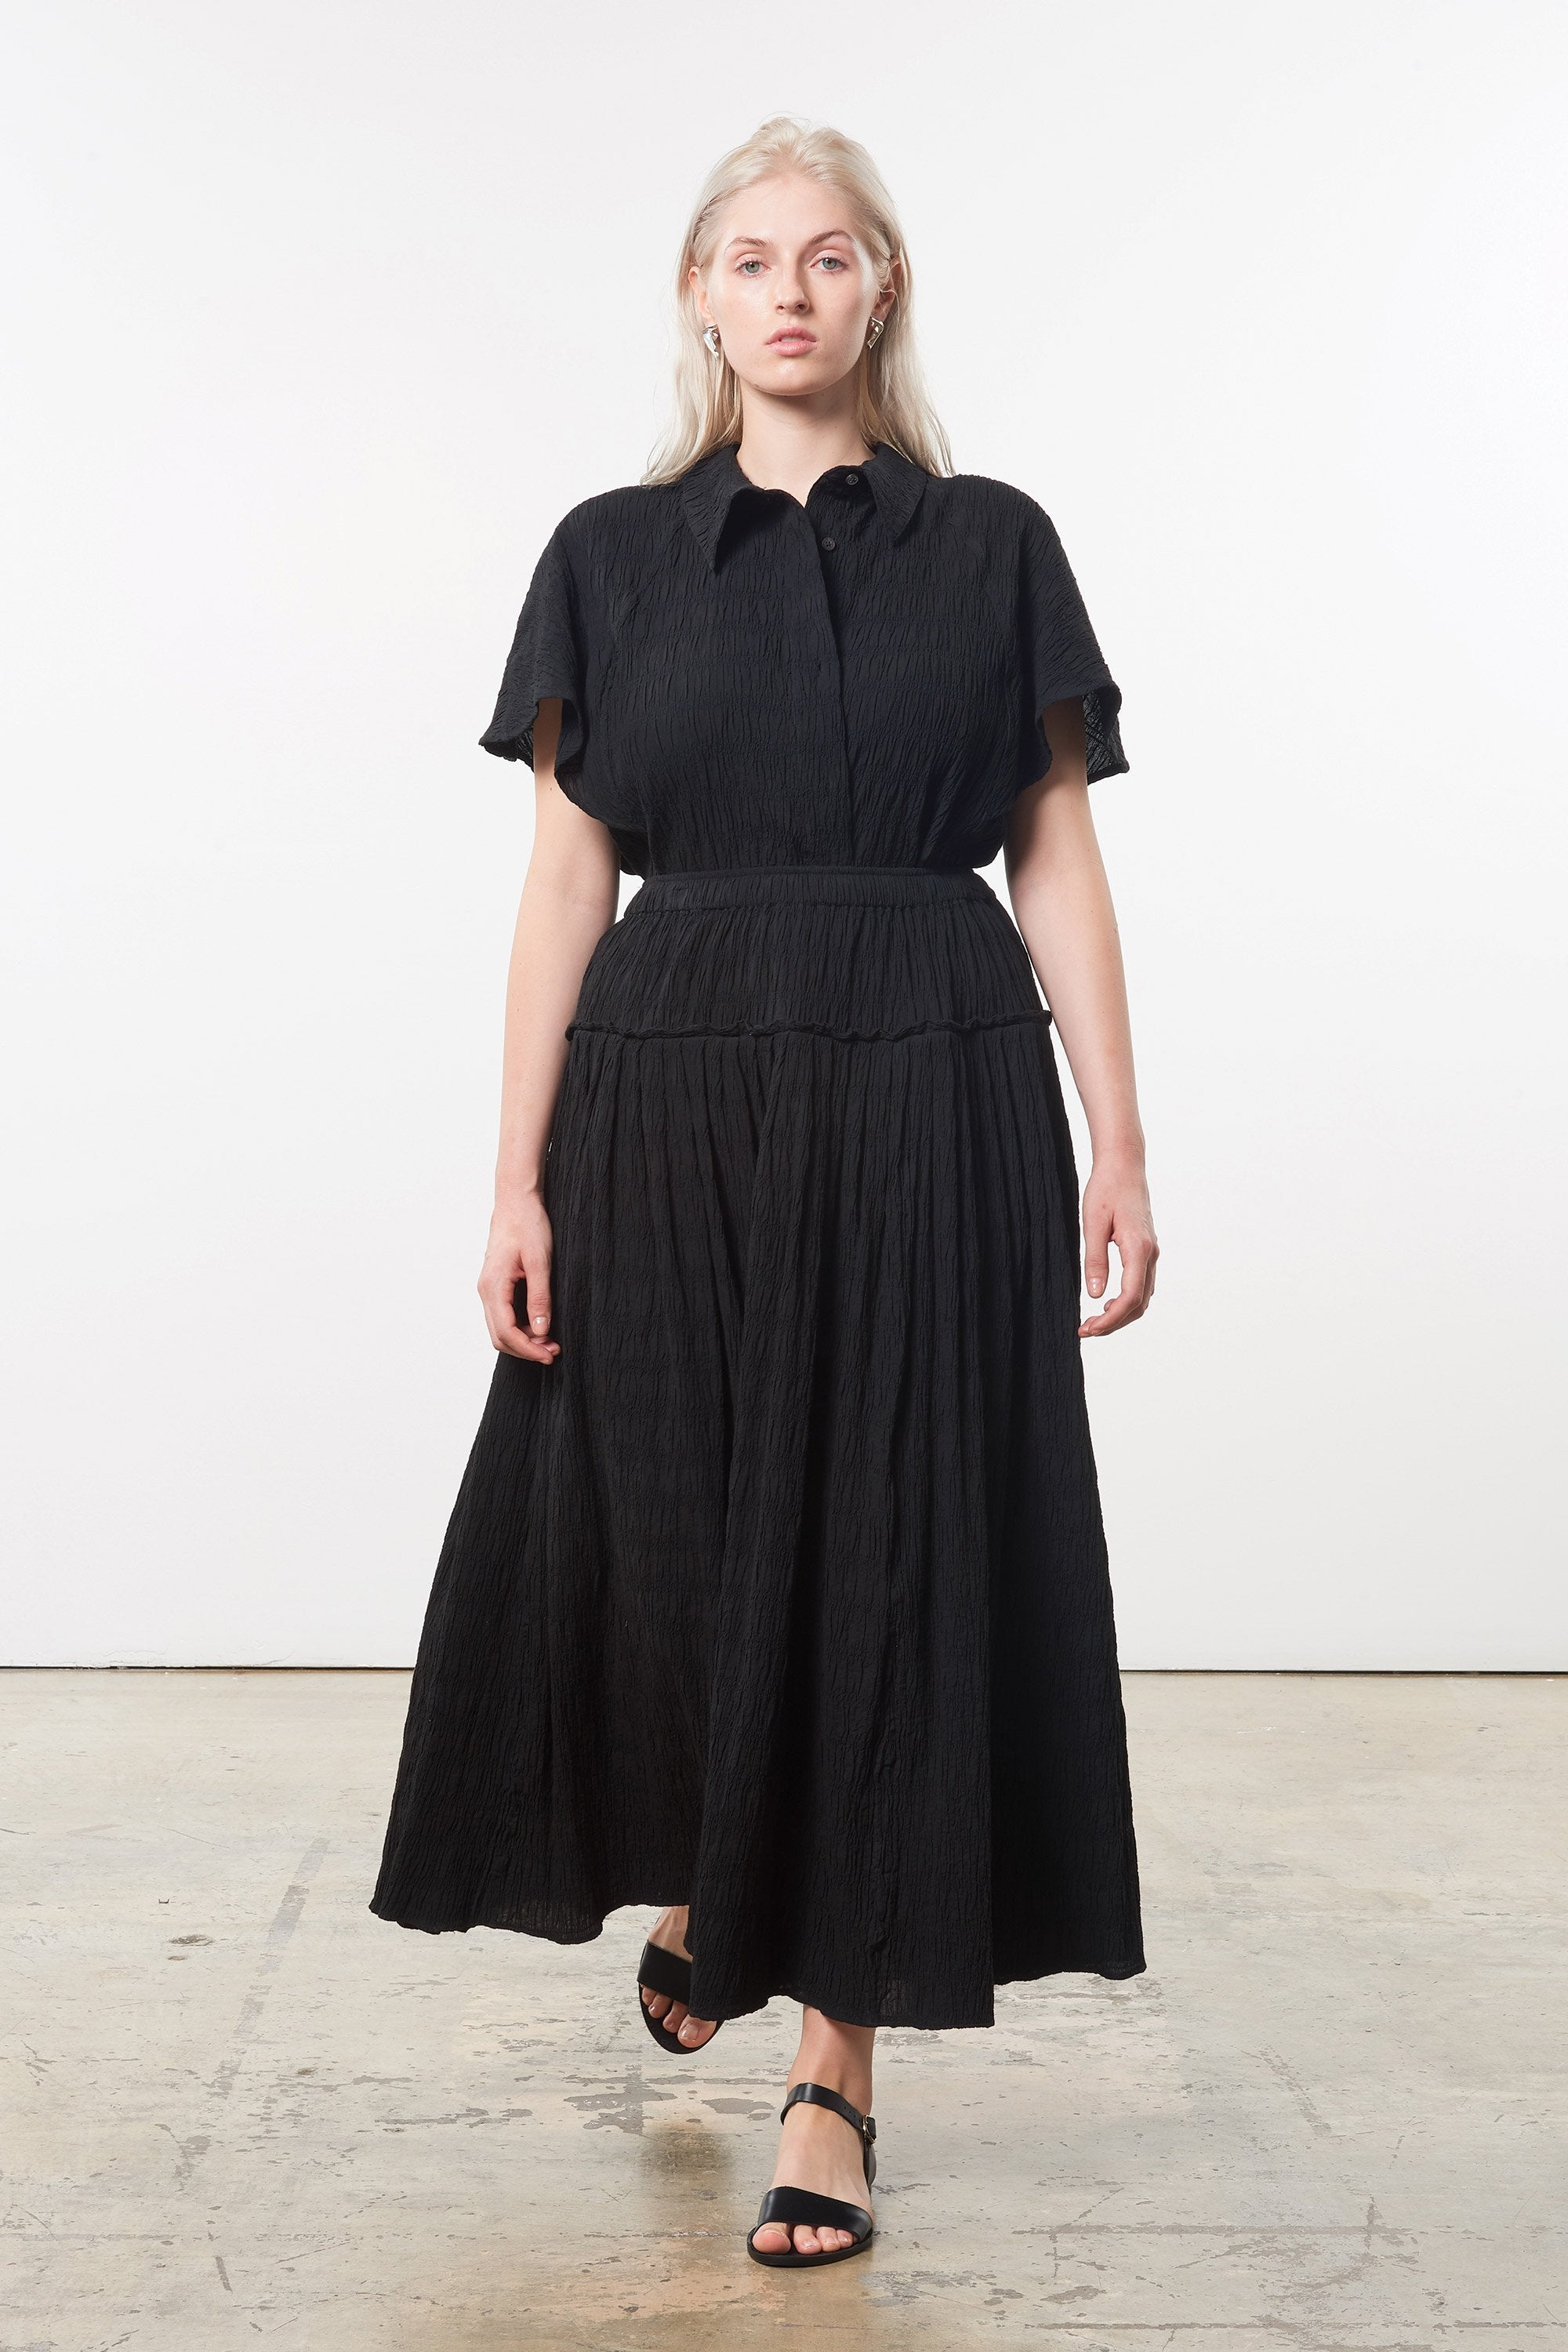 Extended Mara Hoffman Black Alejandra Skirt in organic cotton (front)